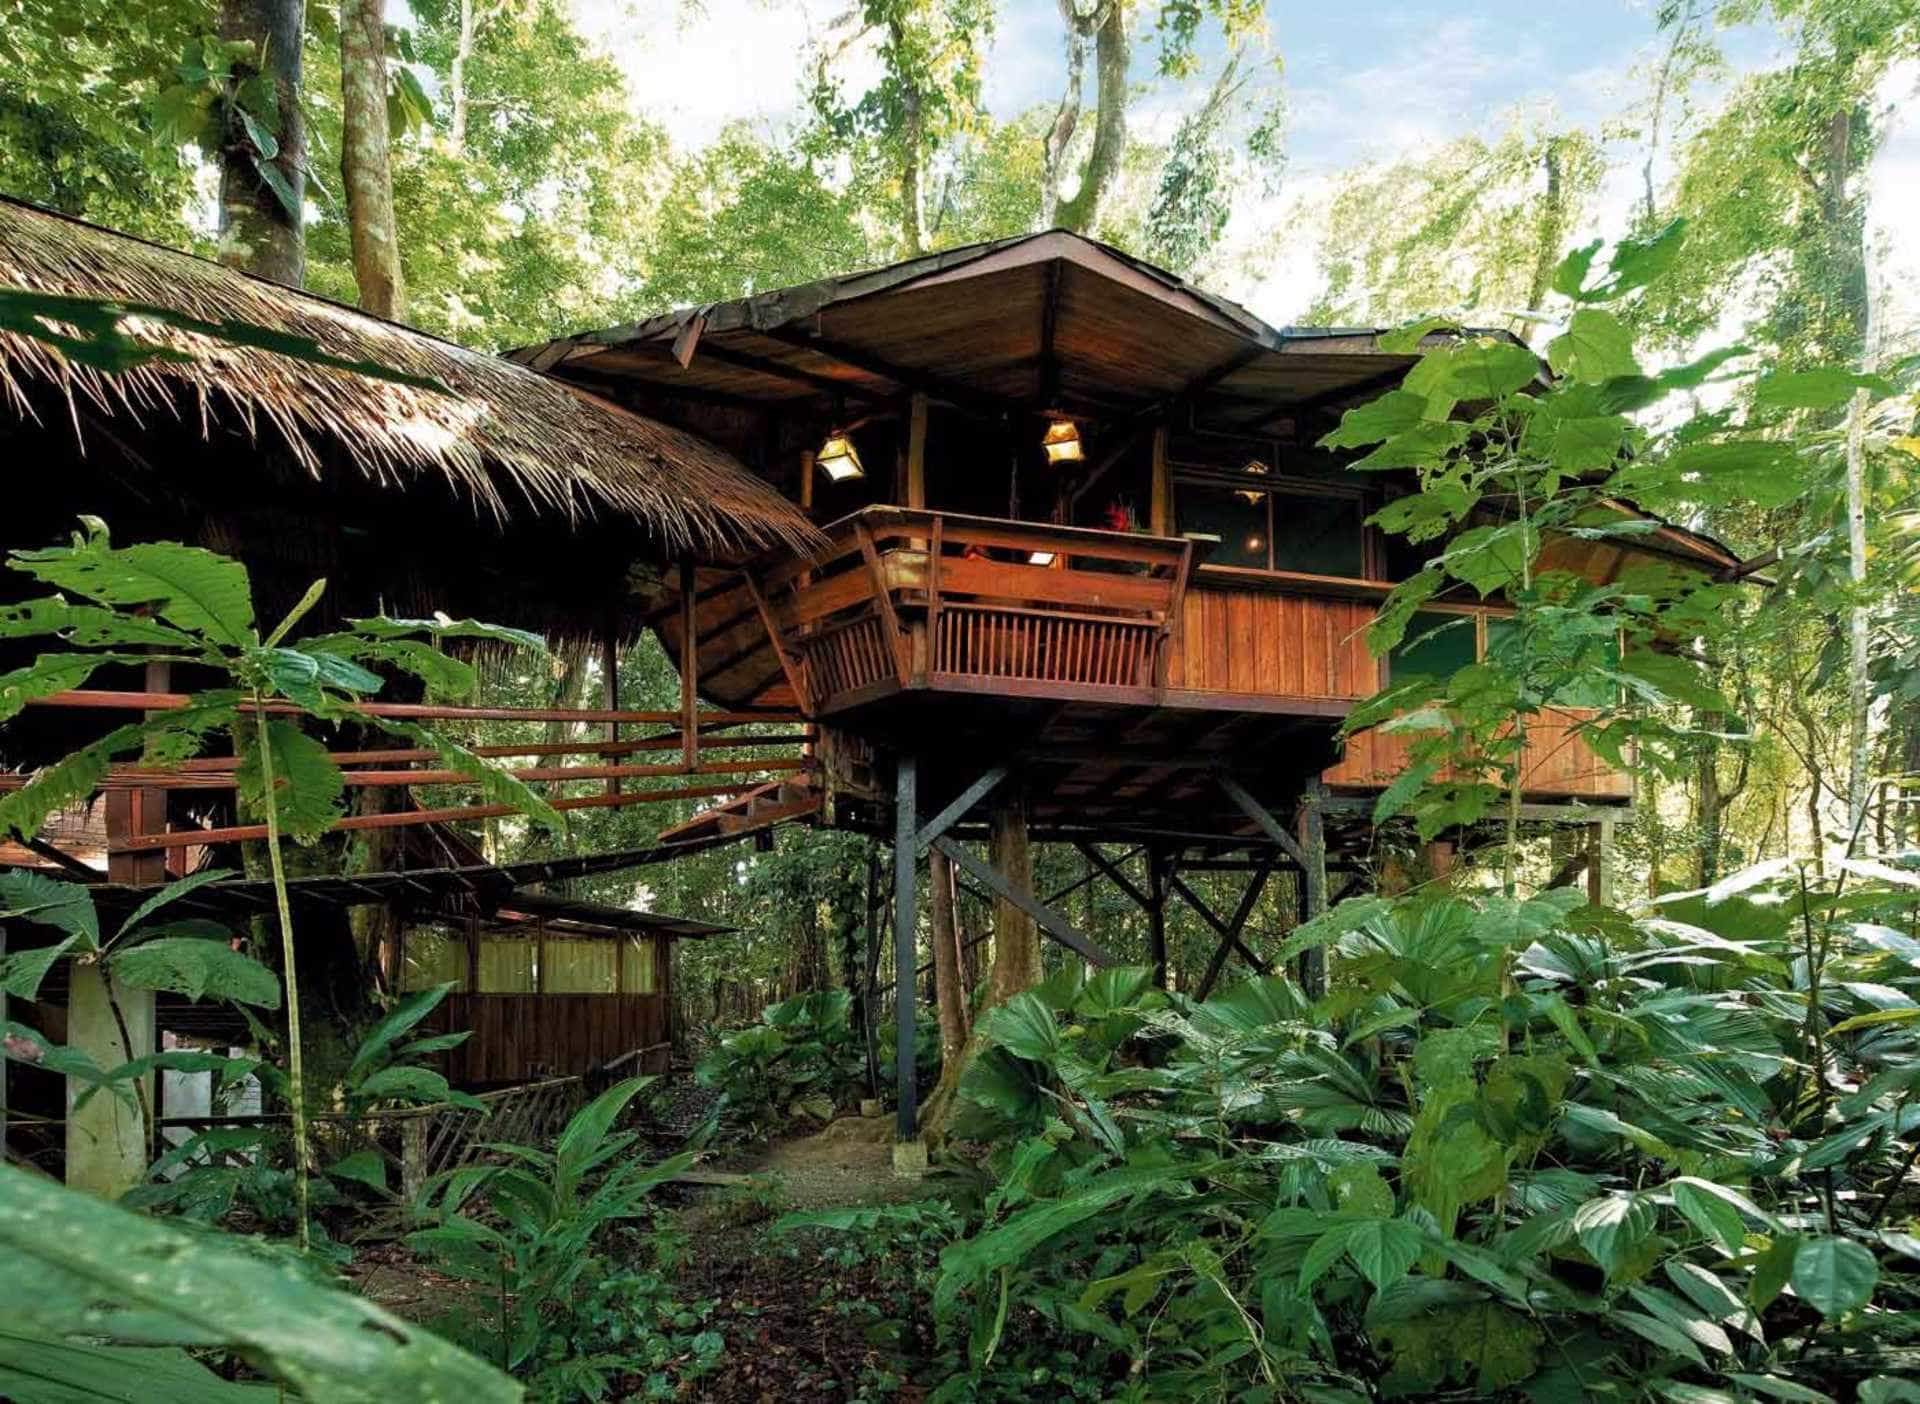 An exterior view of Treehouse Lodge in Punta Uva in Costa Rica